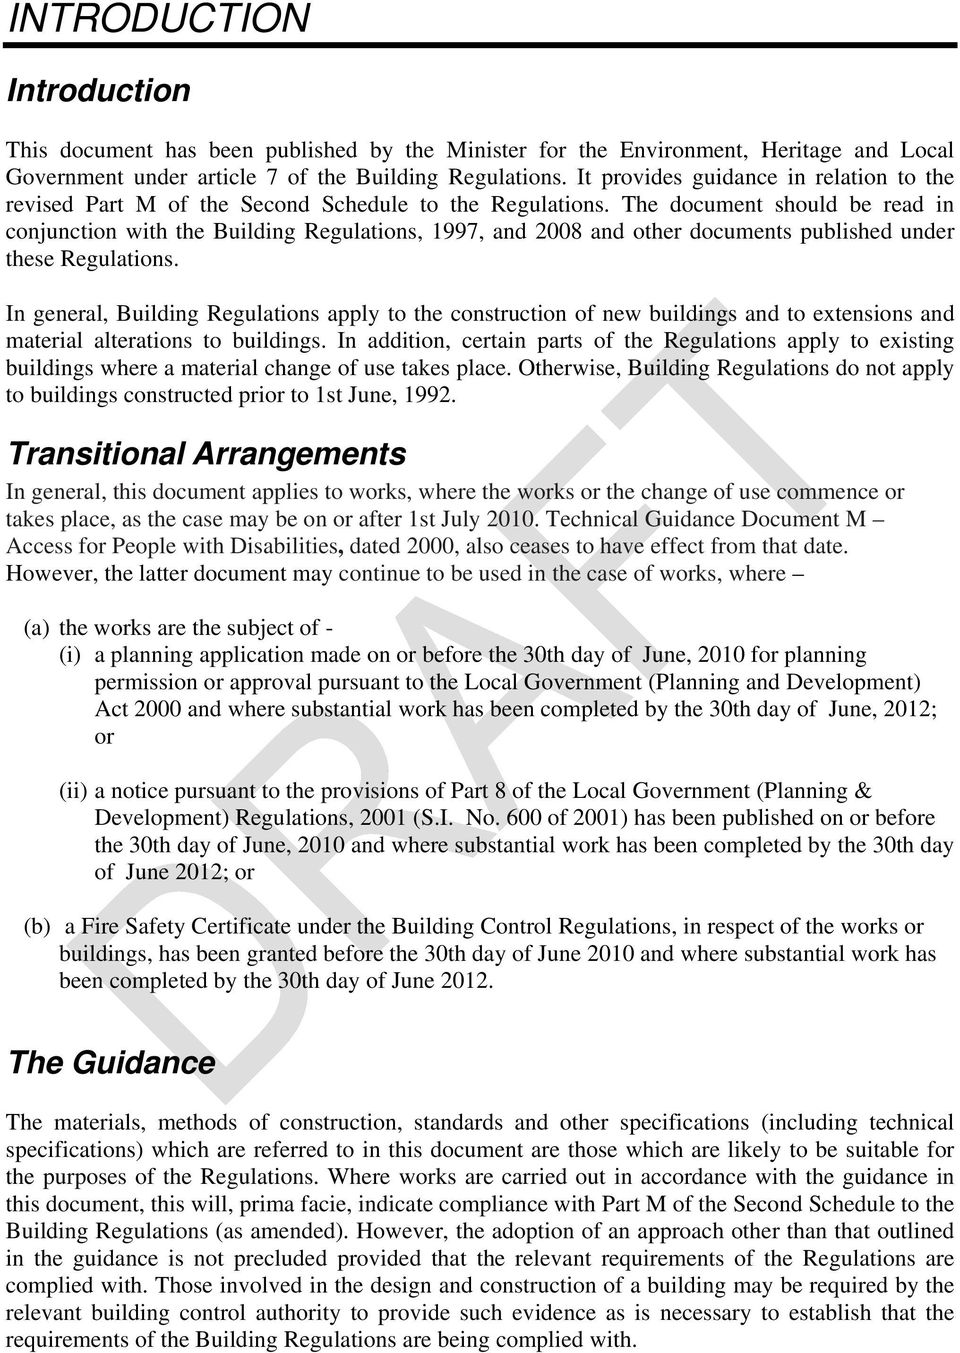 The document should be read in conjunction with the Building Regulations, 1997, and 2008 and other documents published under these Regulations.